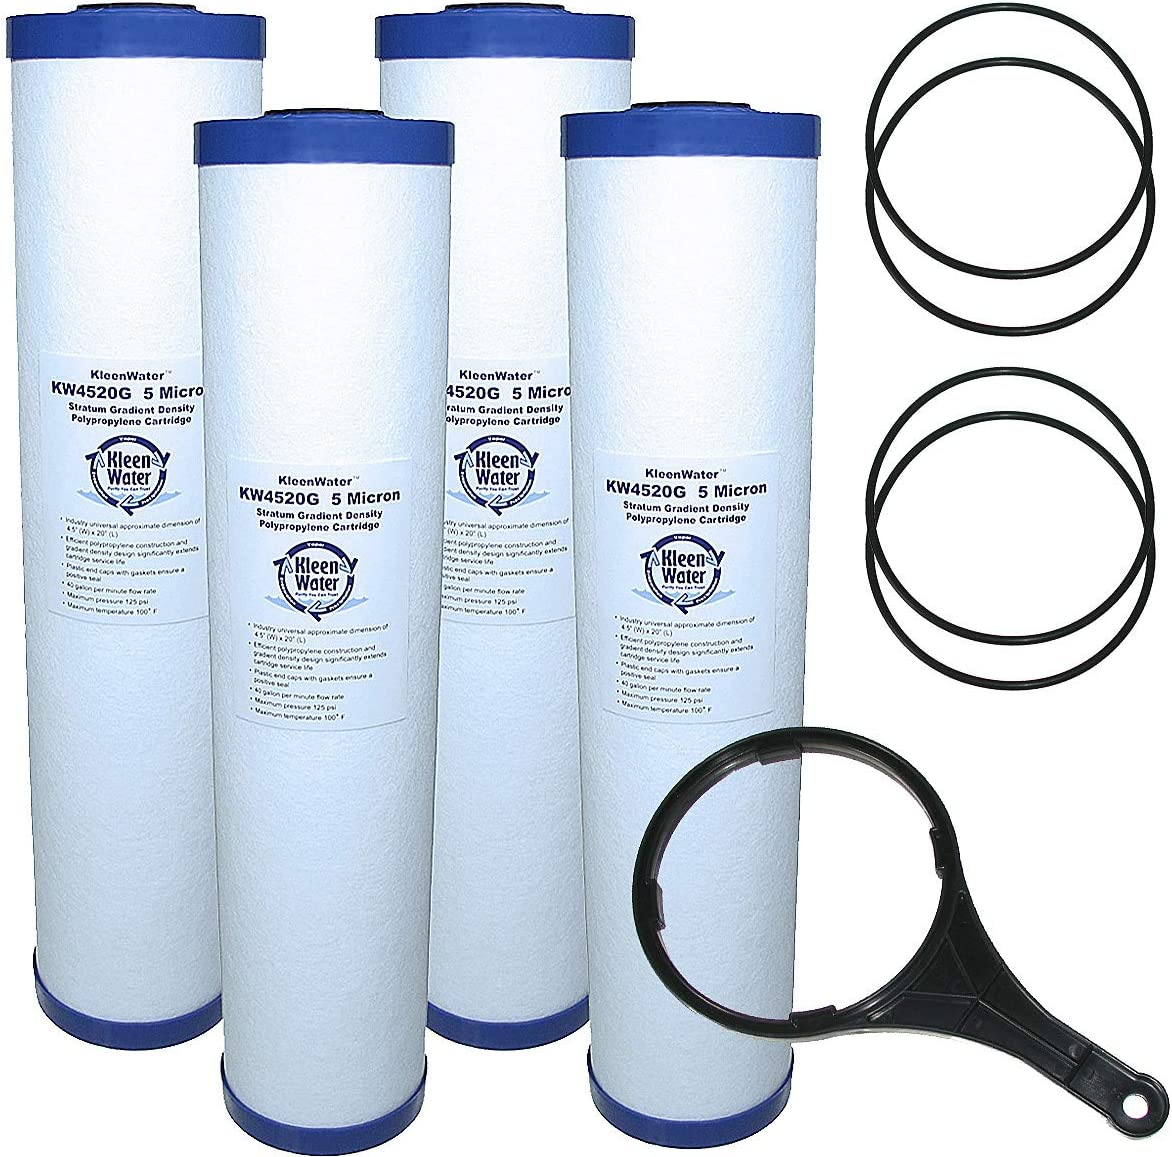 KleenWater KW4520G Sediment Water Filter Qty4 Max Sacramento Mall 80% OFF KW101 Cartridges